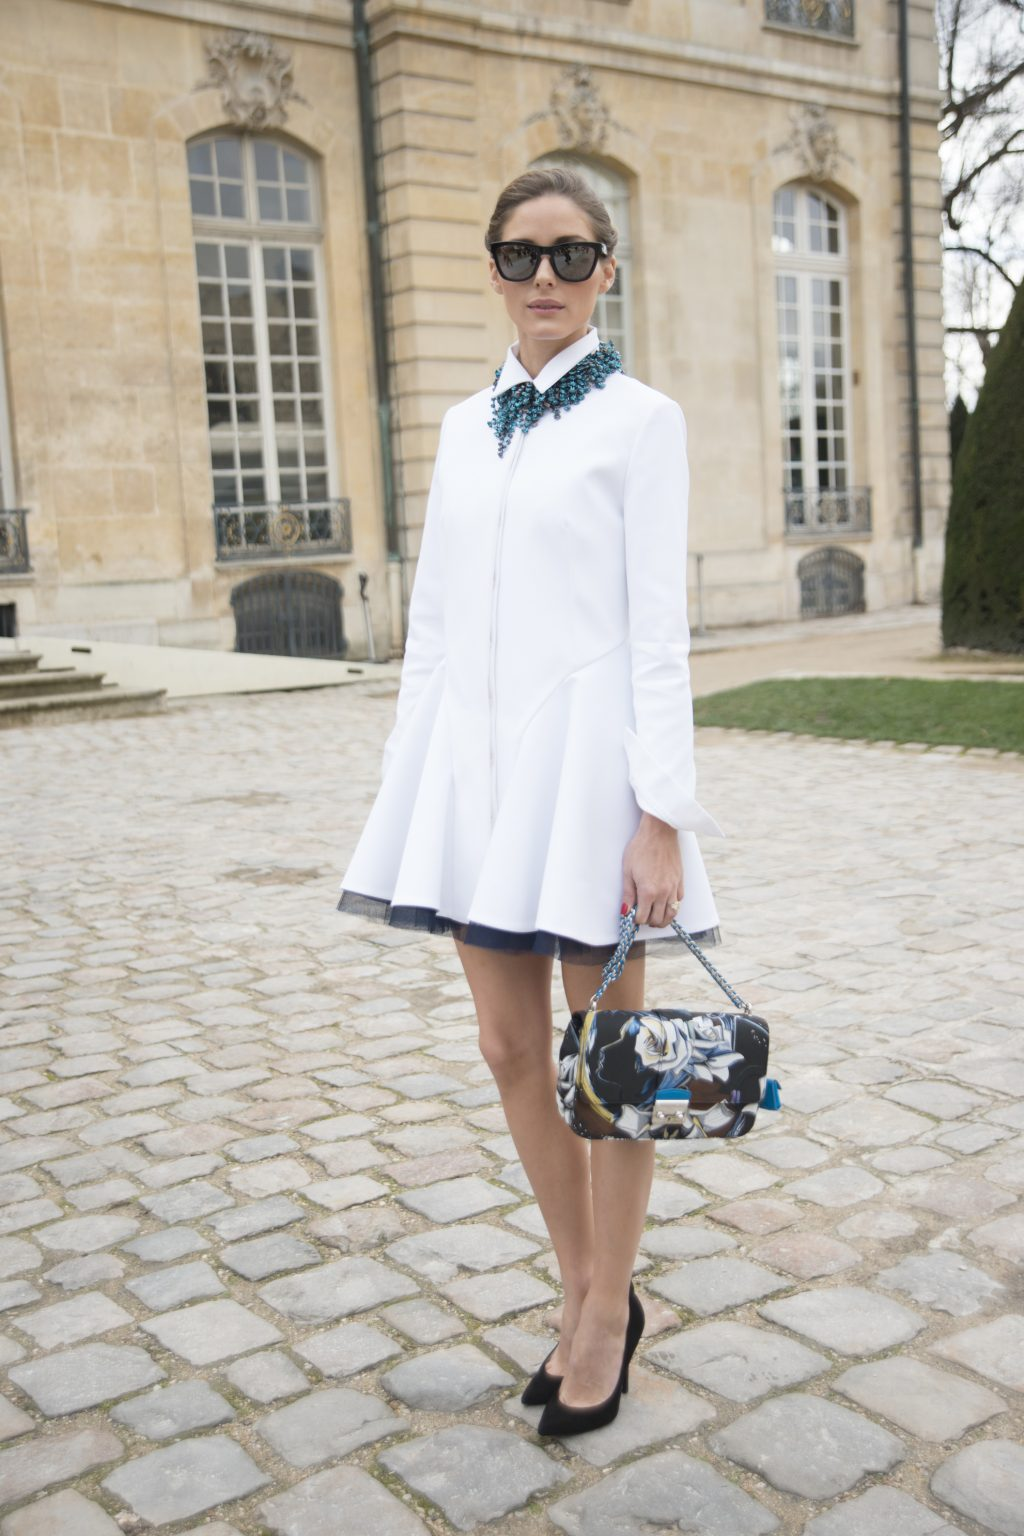 Olivia Palermo Paris 2014 in Paris, France. (Photo by Kirstin Sinclair/Getty Images)